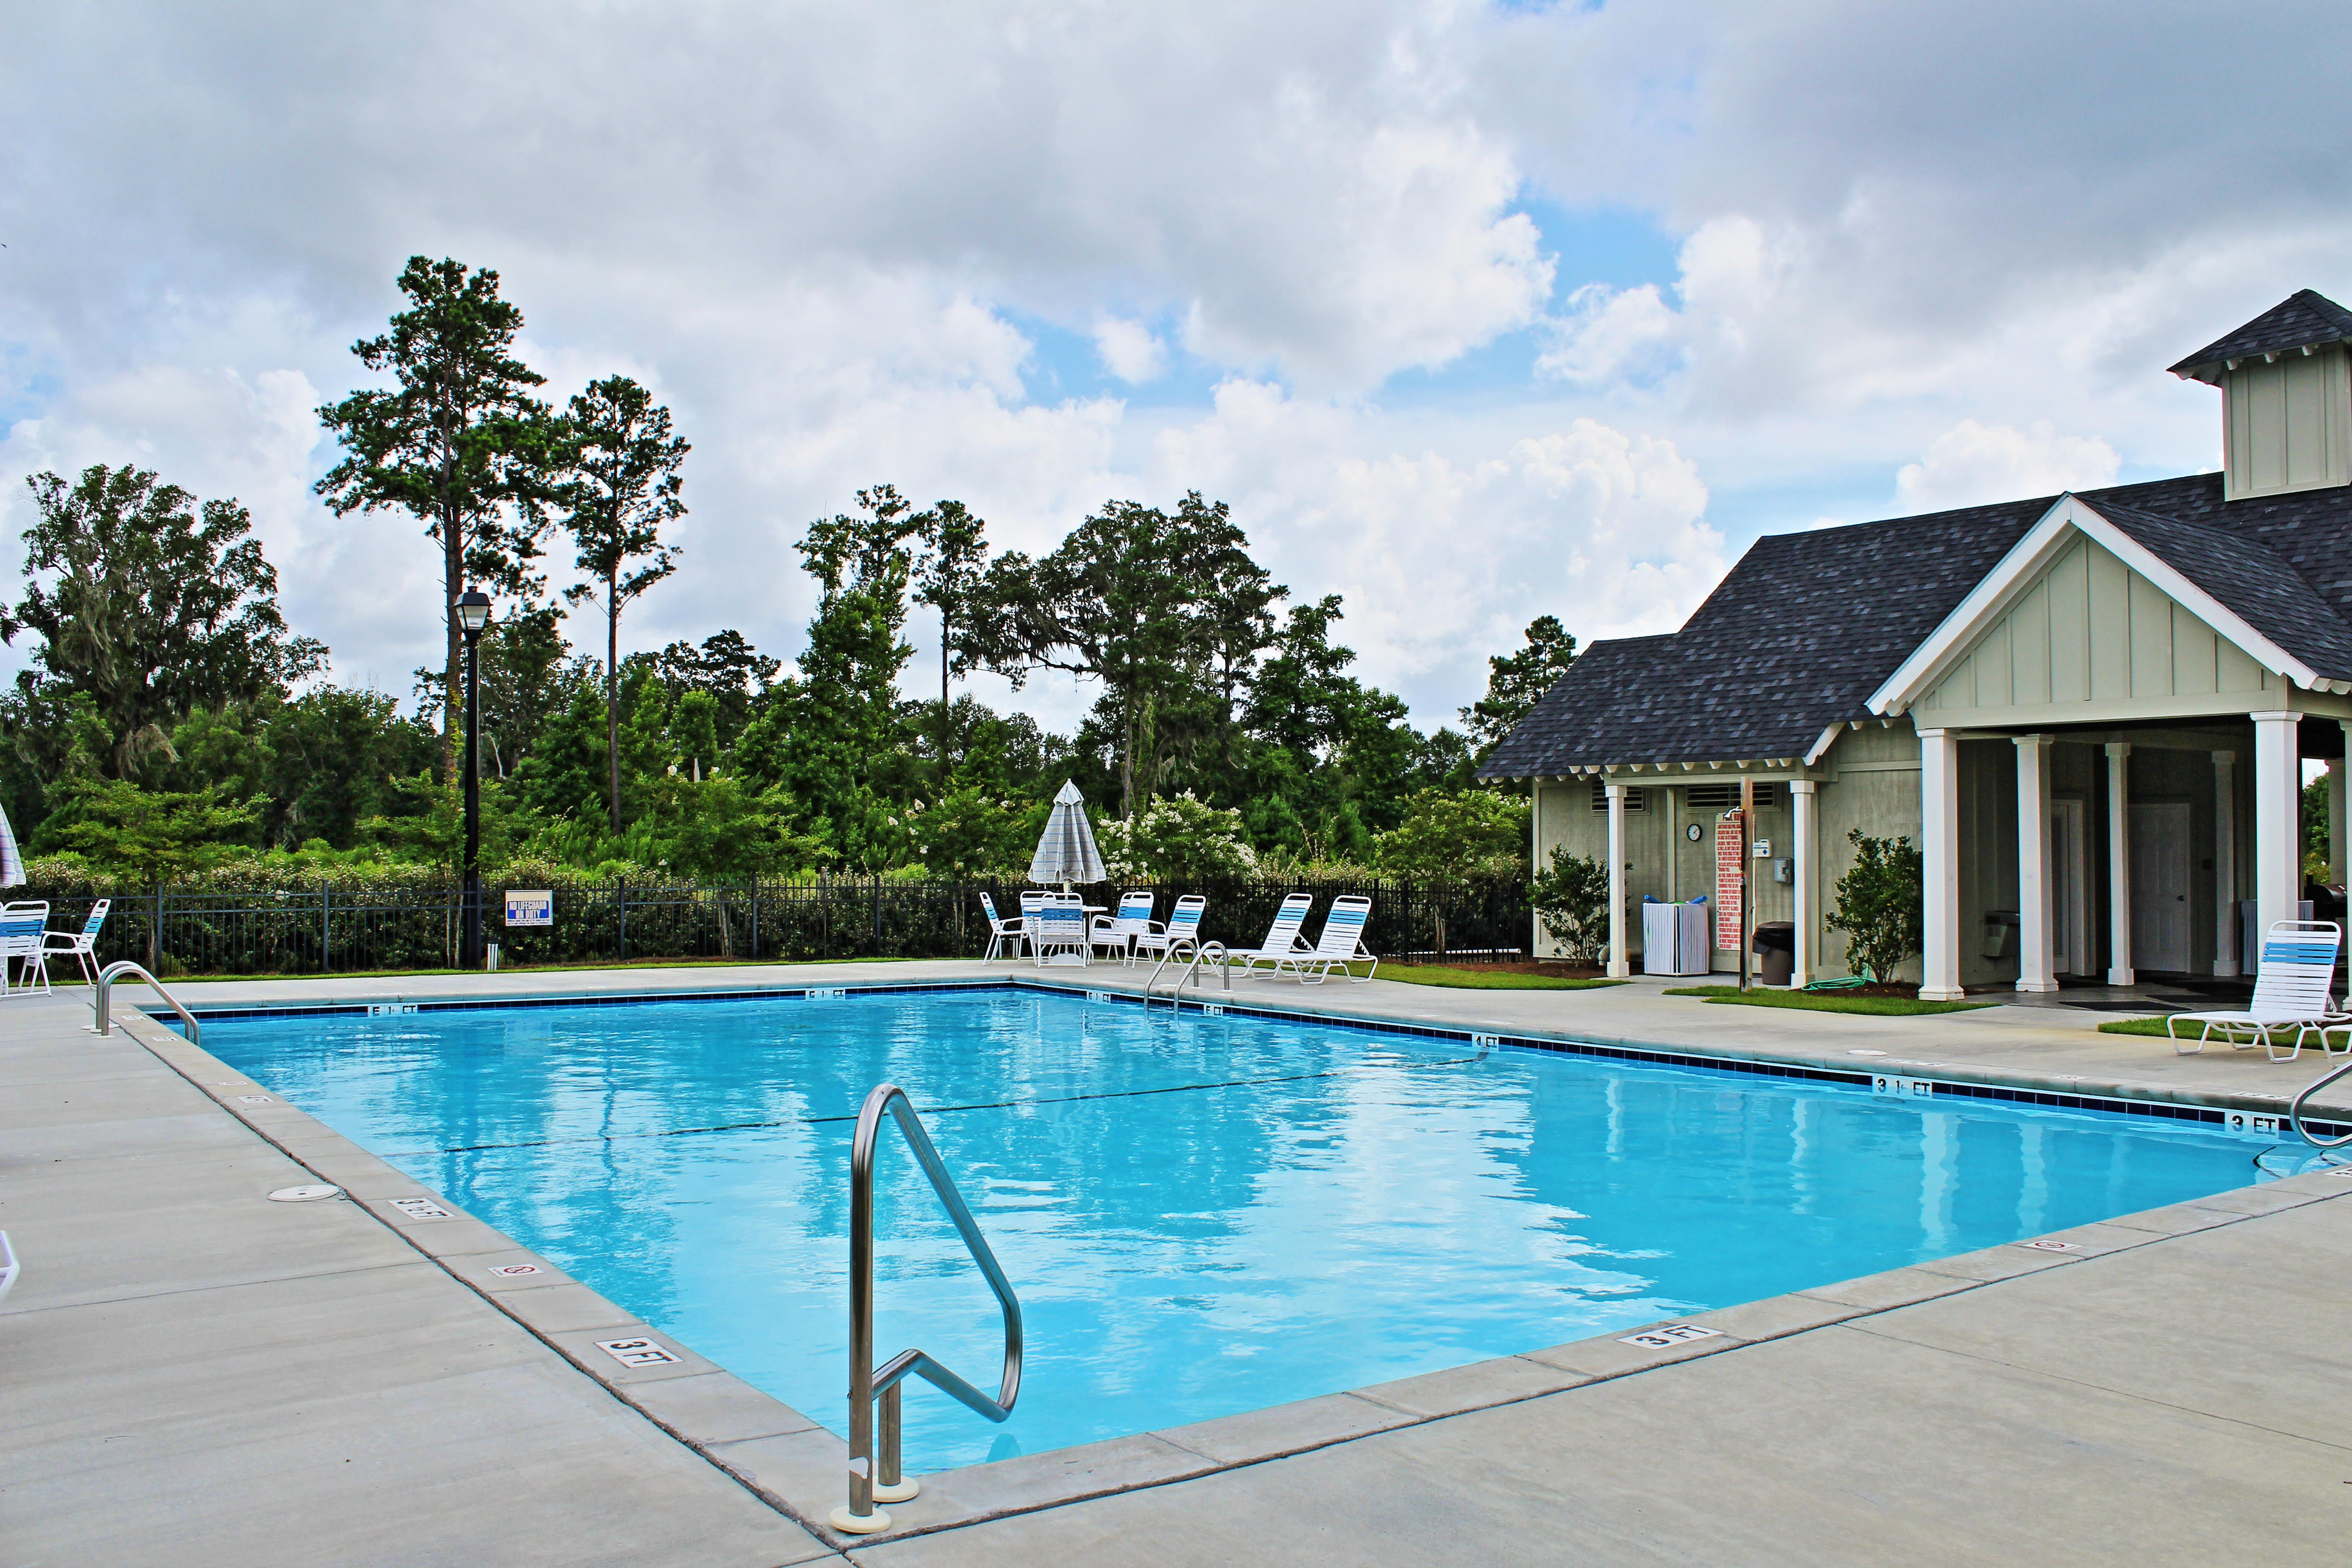 South Georgia Neighborhood Pool! Who wouldn't want to spend time here with friends and family?